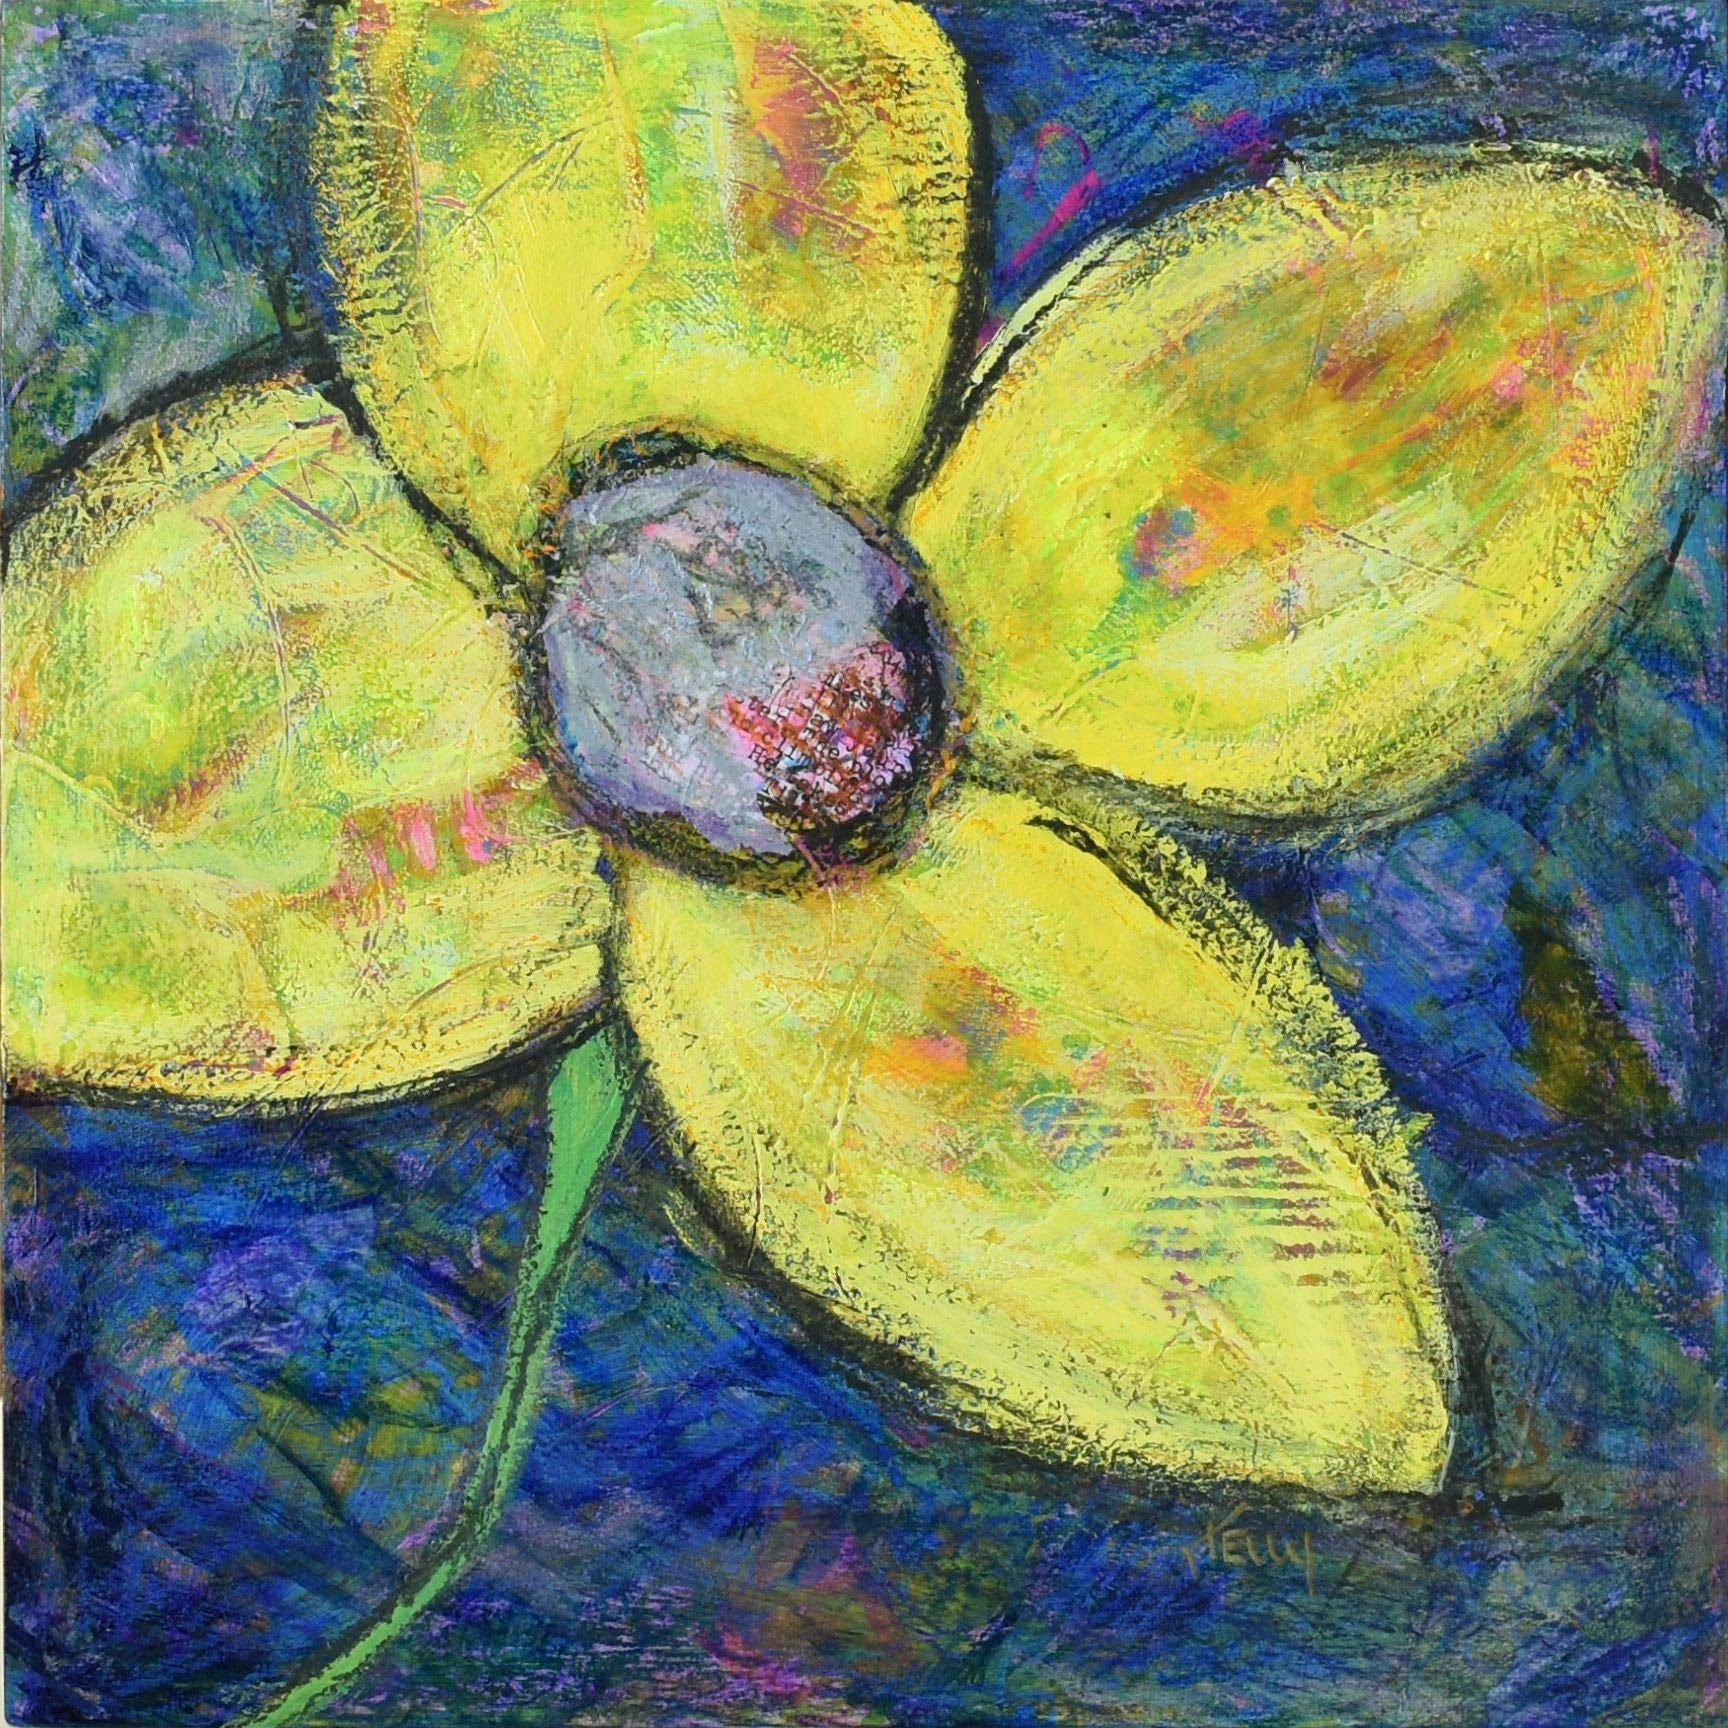 Flower Power 1 - Original Painting by